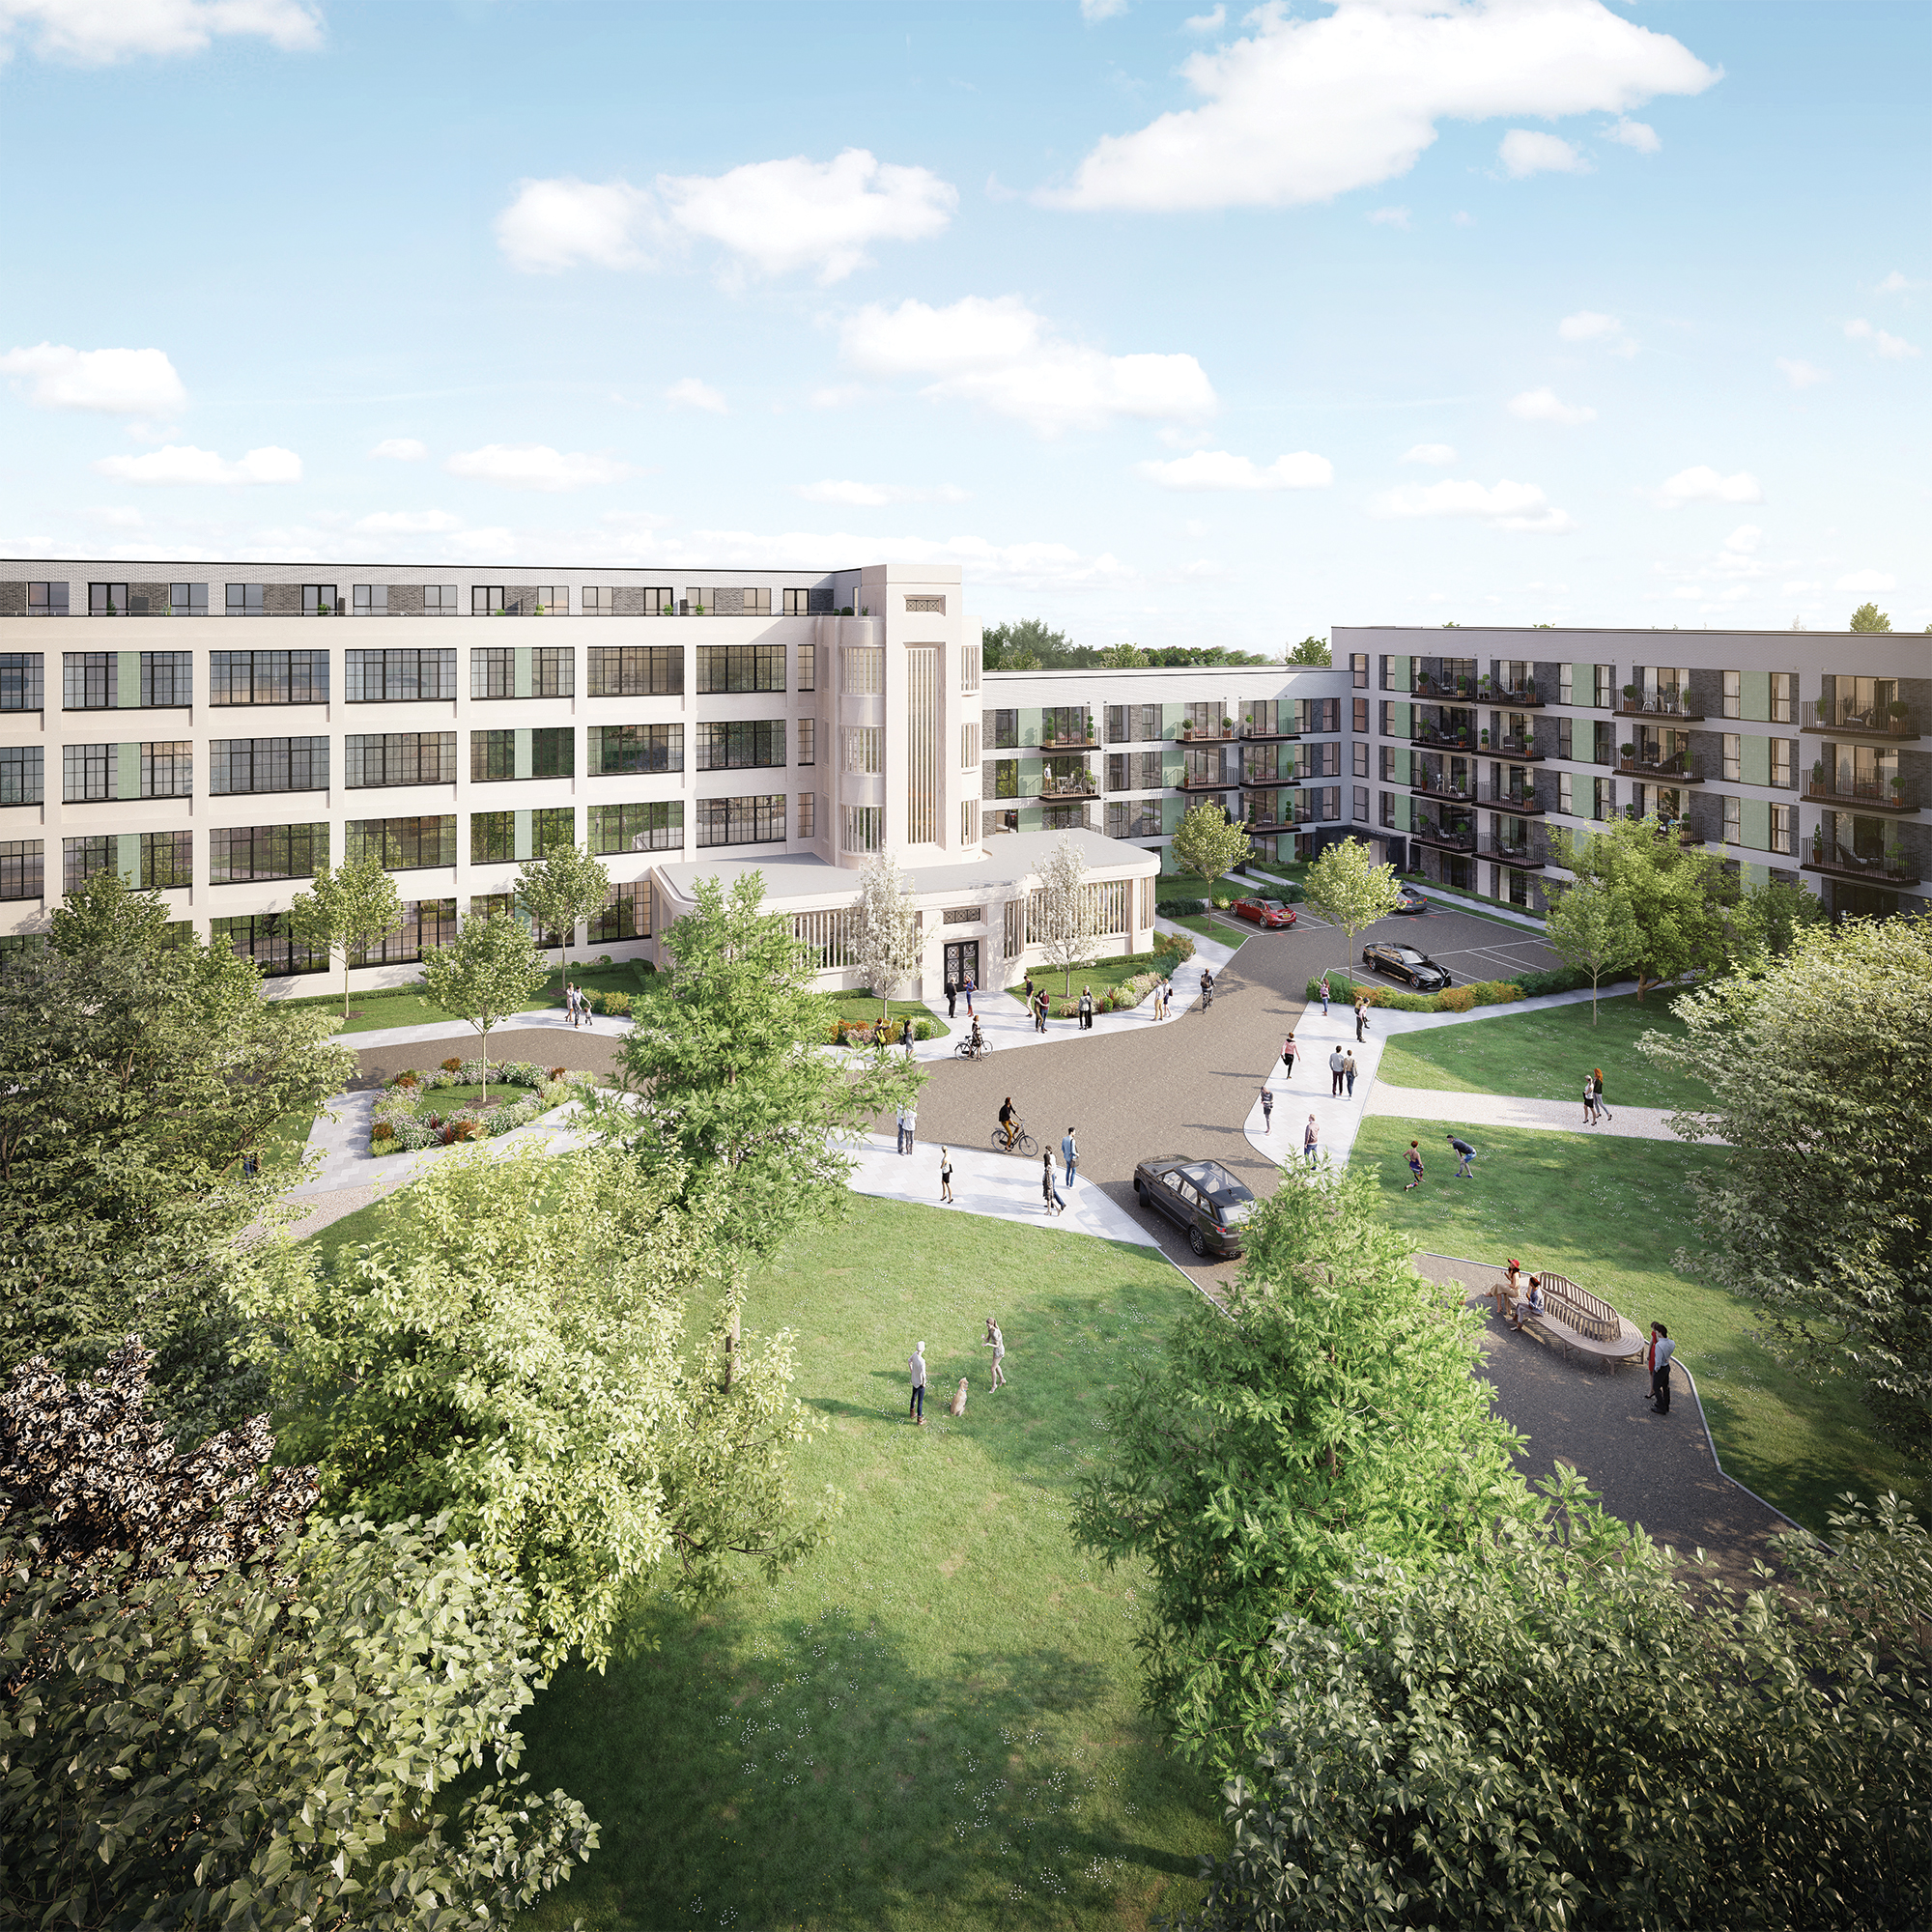 Hayes Village New Homes In Hayes Middlesex Barratt Homes